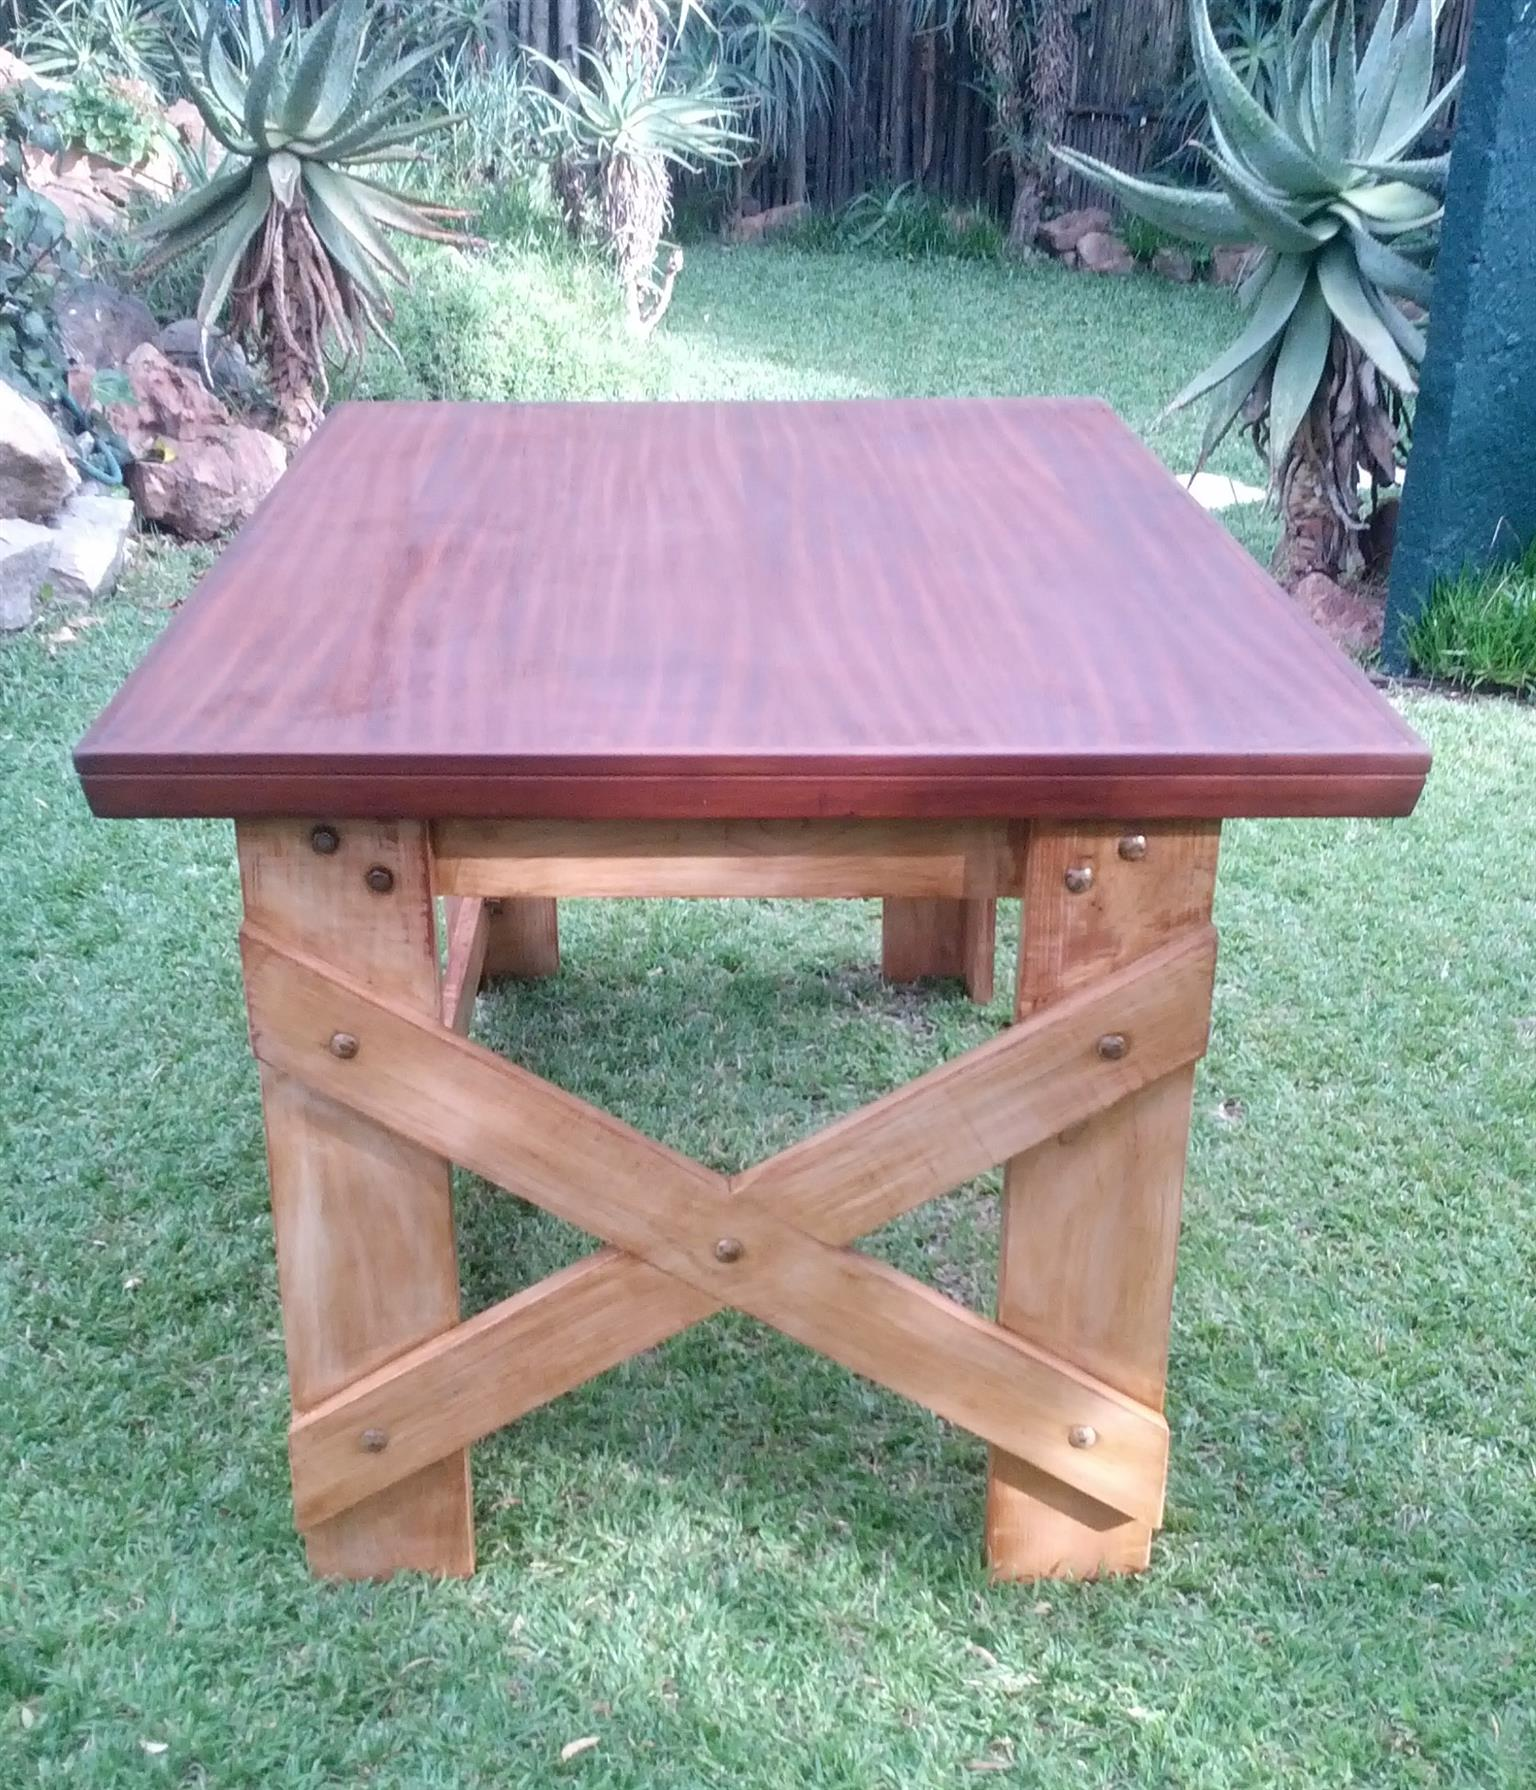 Work table - standing height